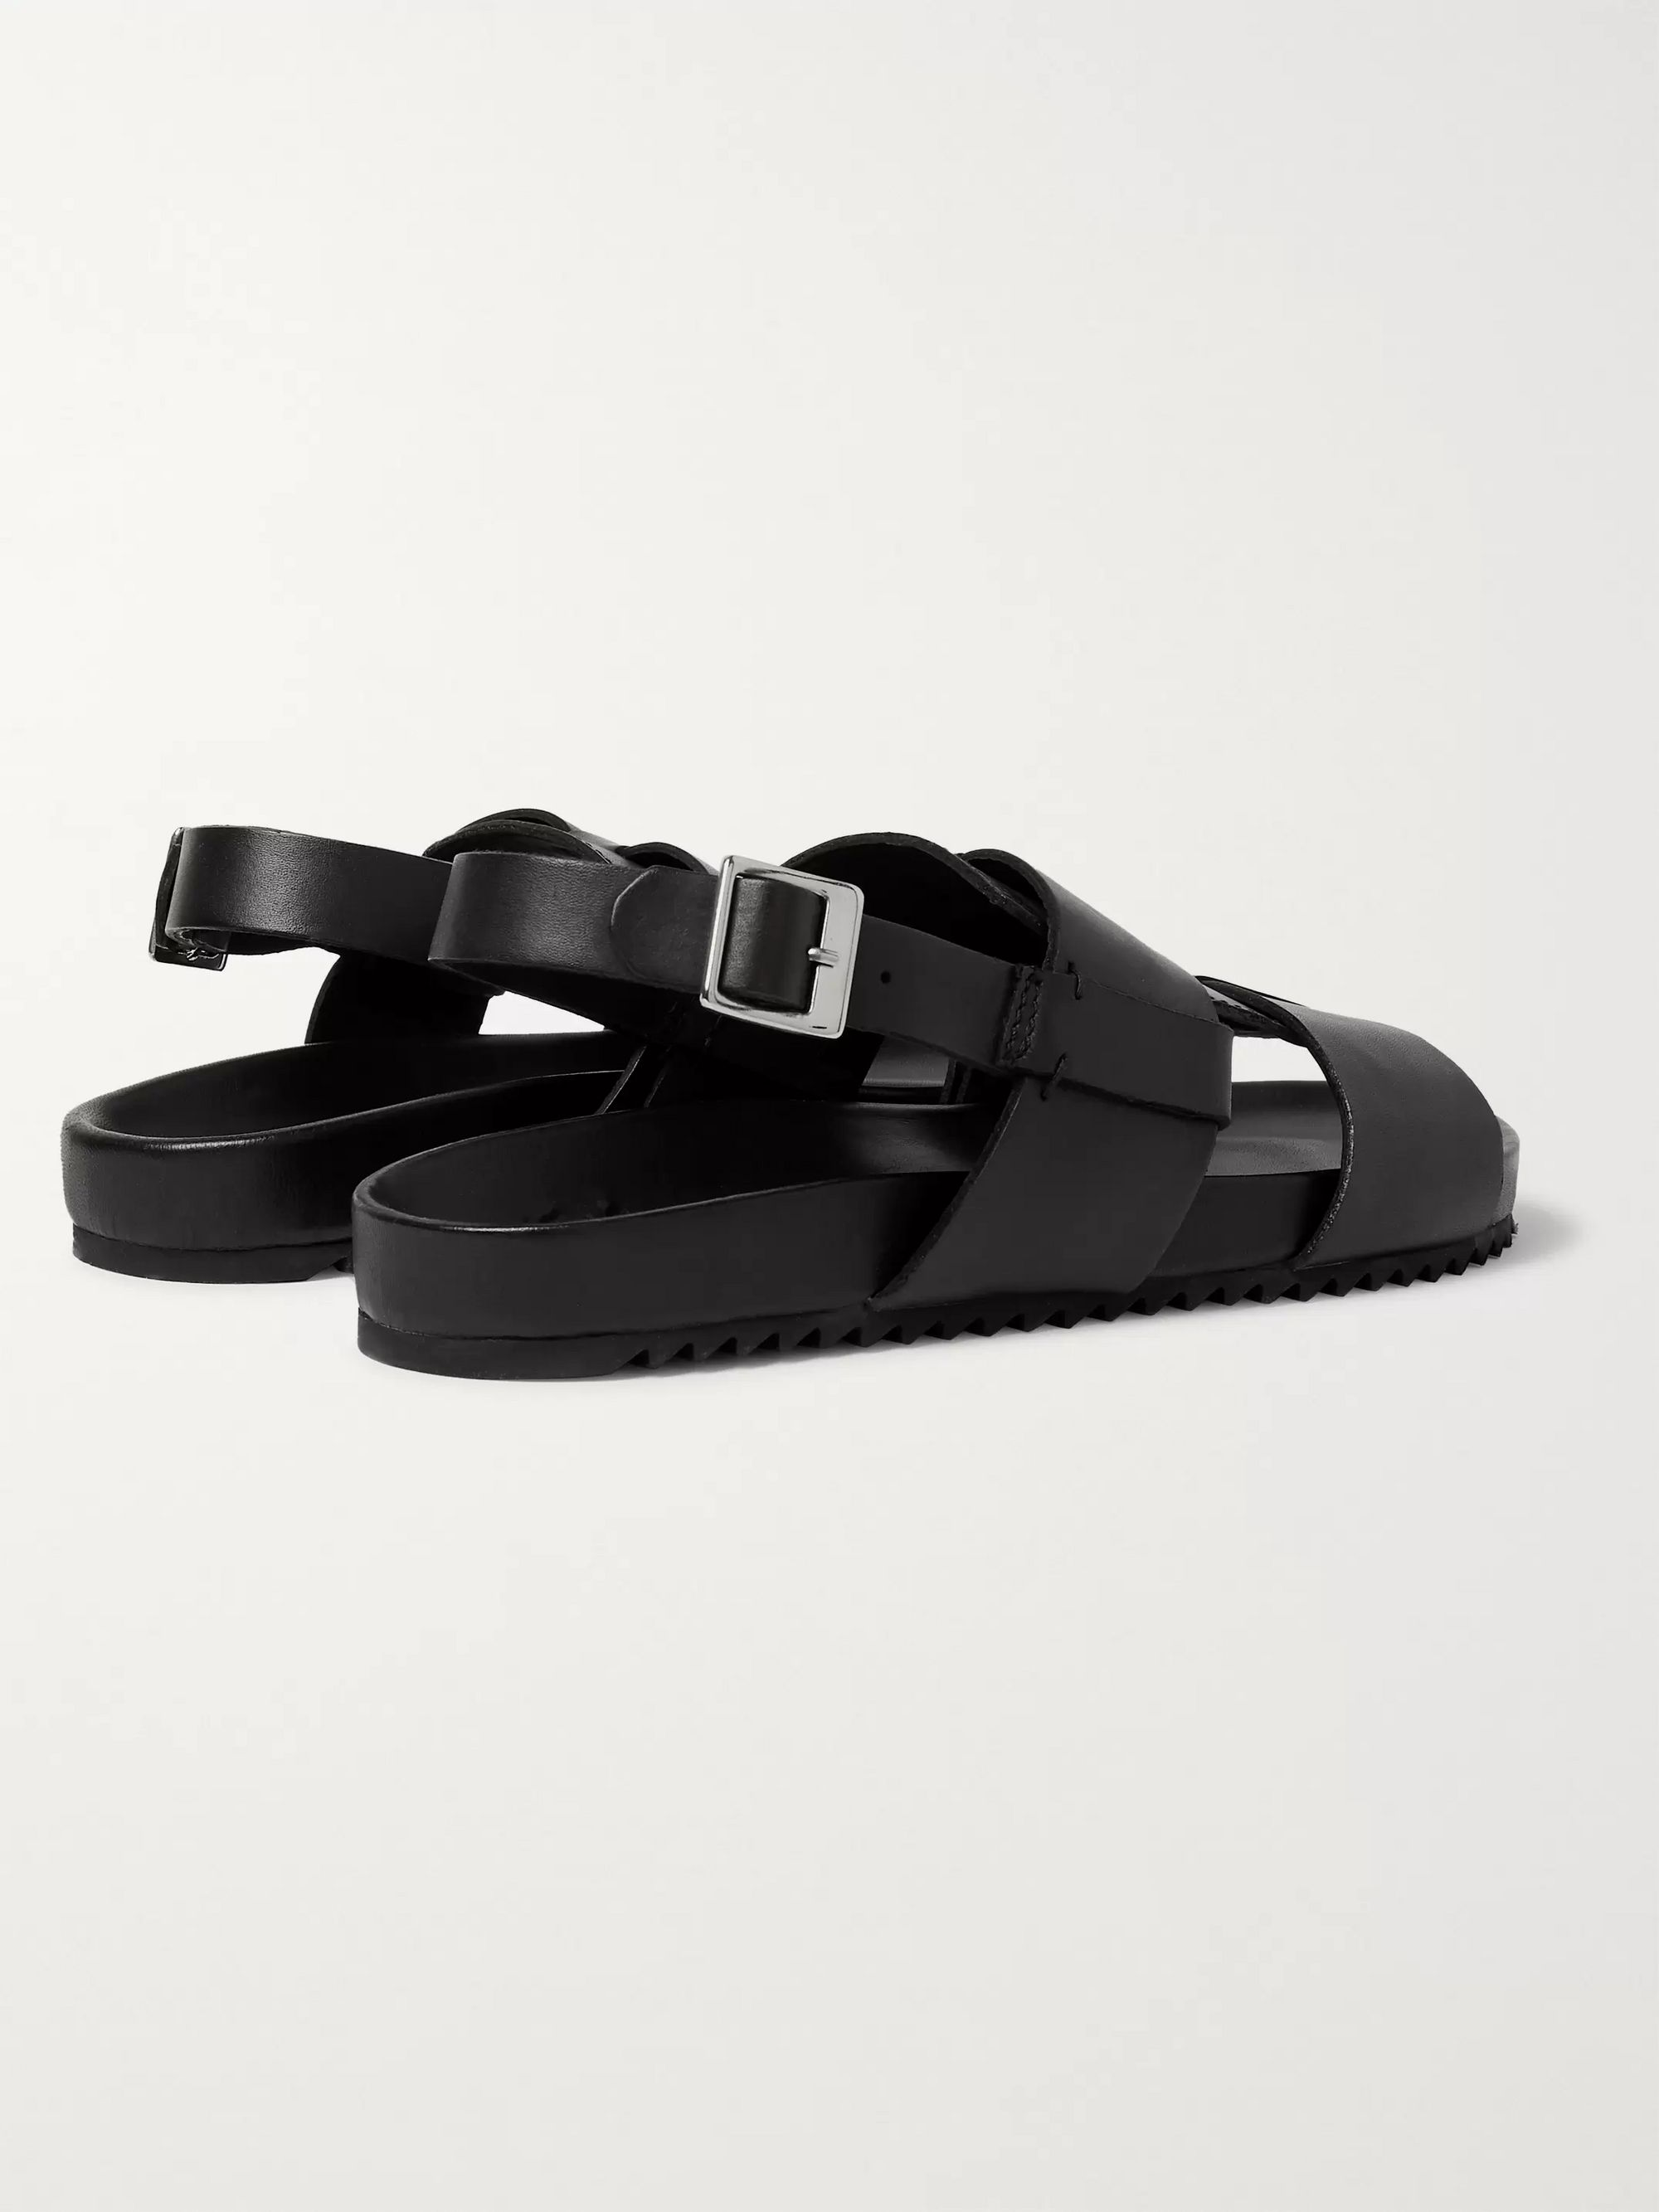 Grenson Wiley Leather Sandals